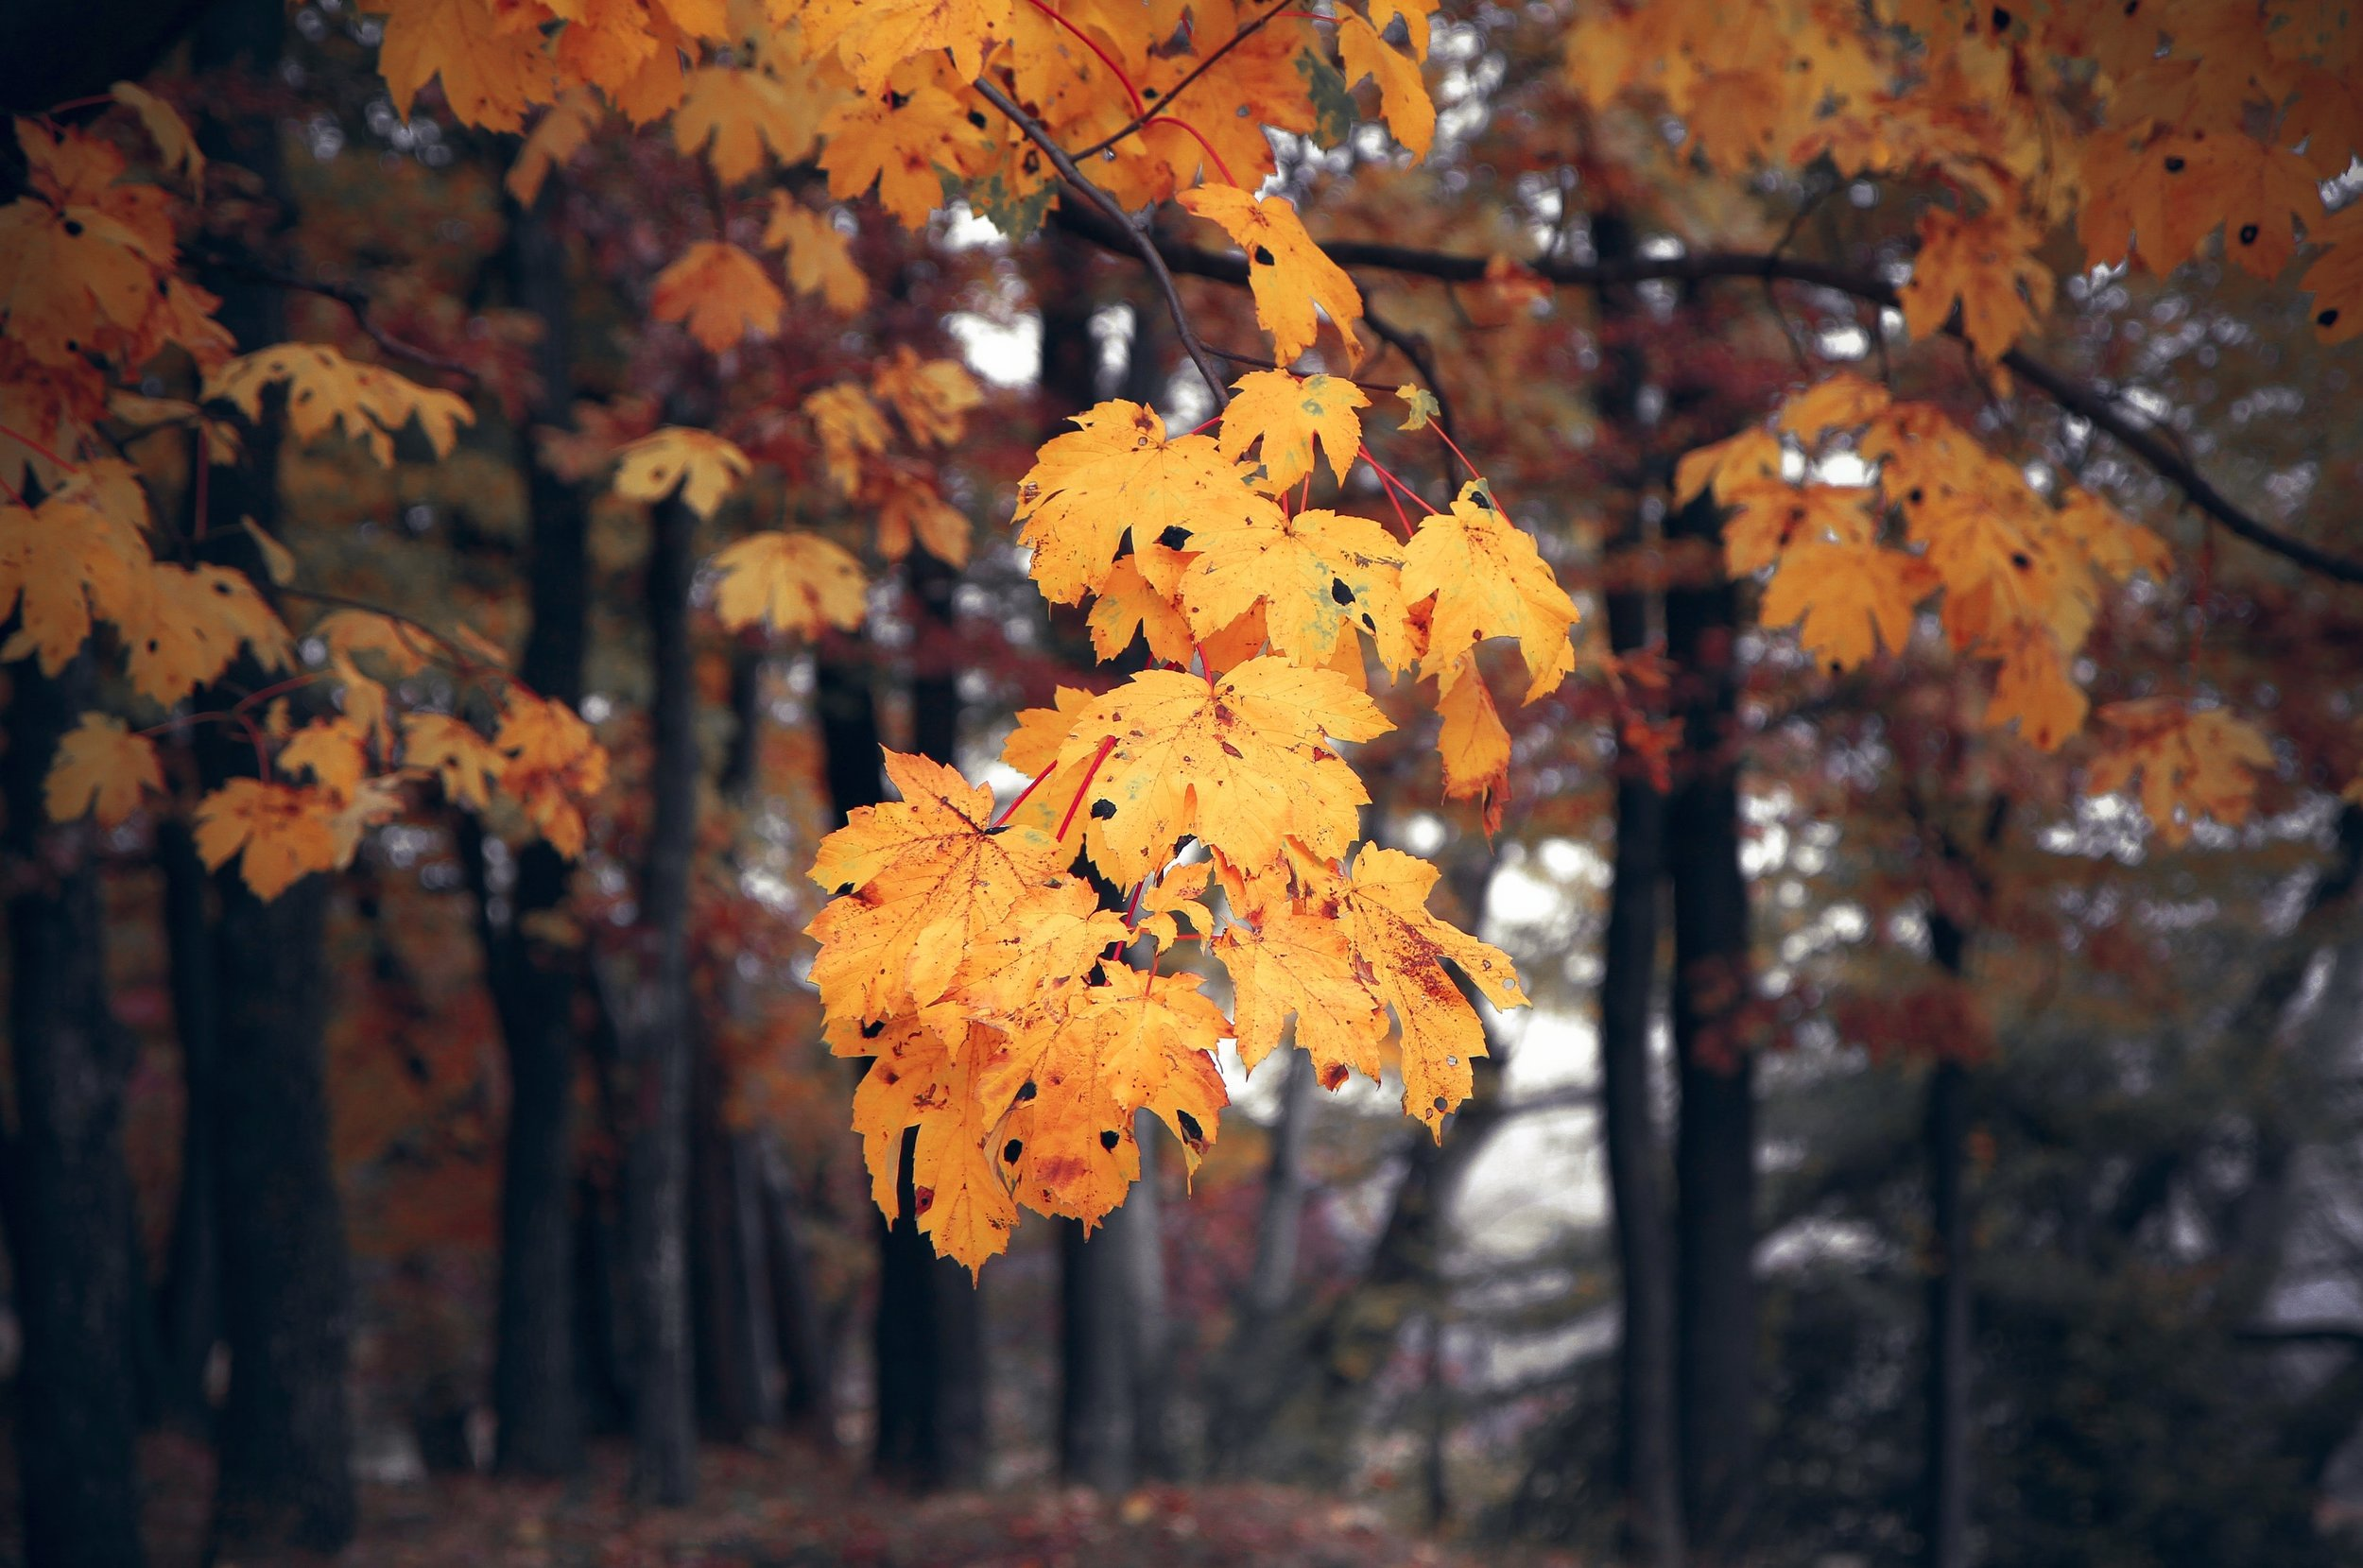 autumn-autumn-colours-autumn-leaves-589842.jpg